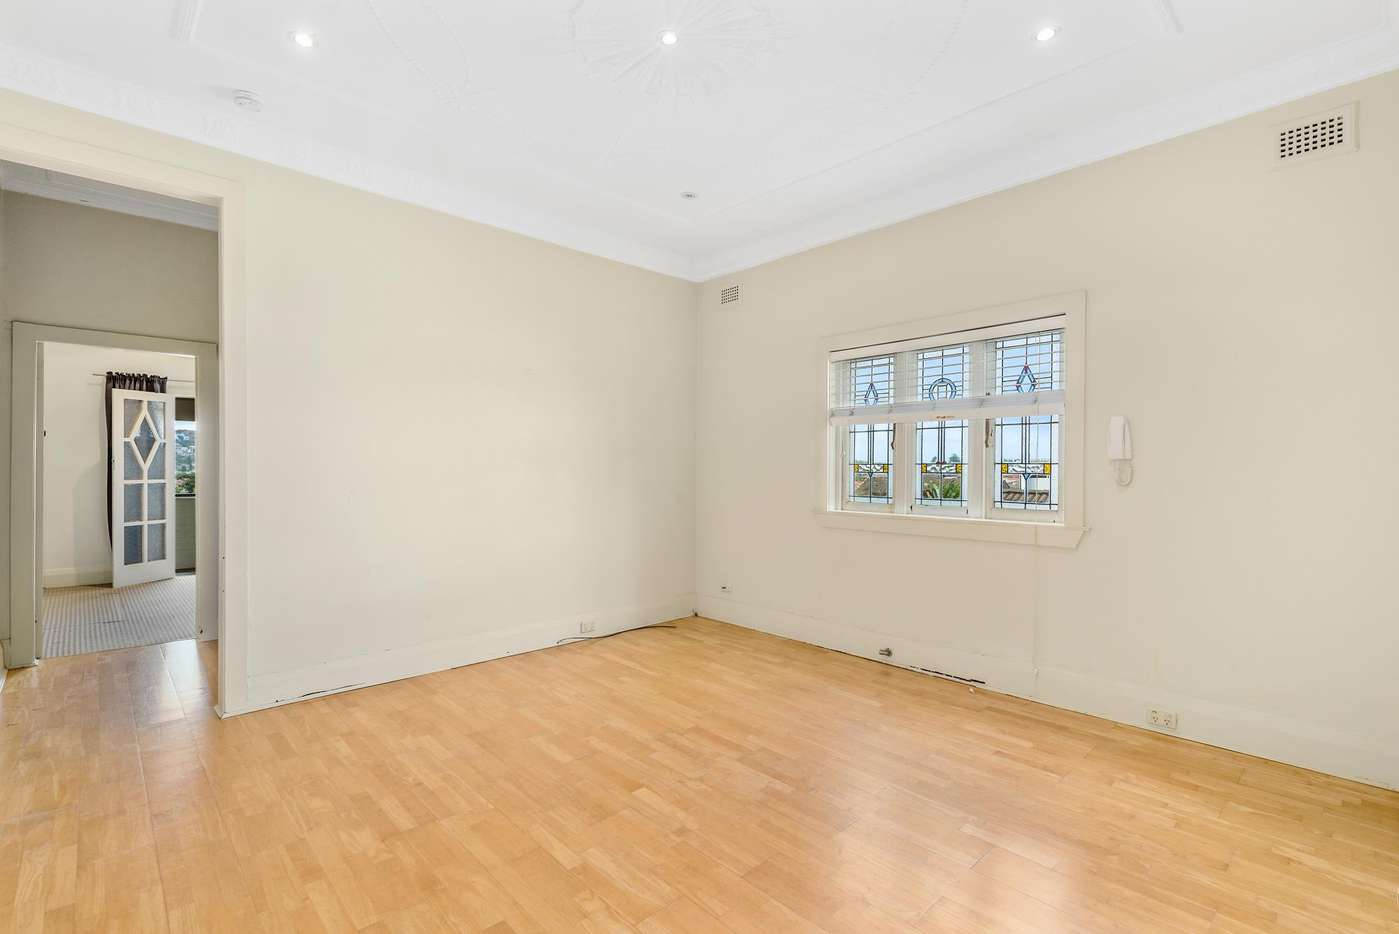 Main view of Homely unit listing, 7/34 Roscoe Street, Bondi, NSW 2026